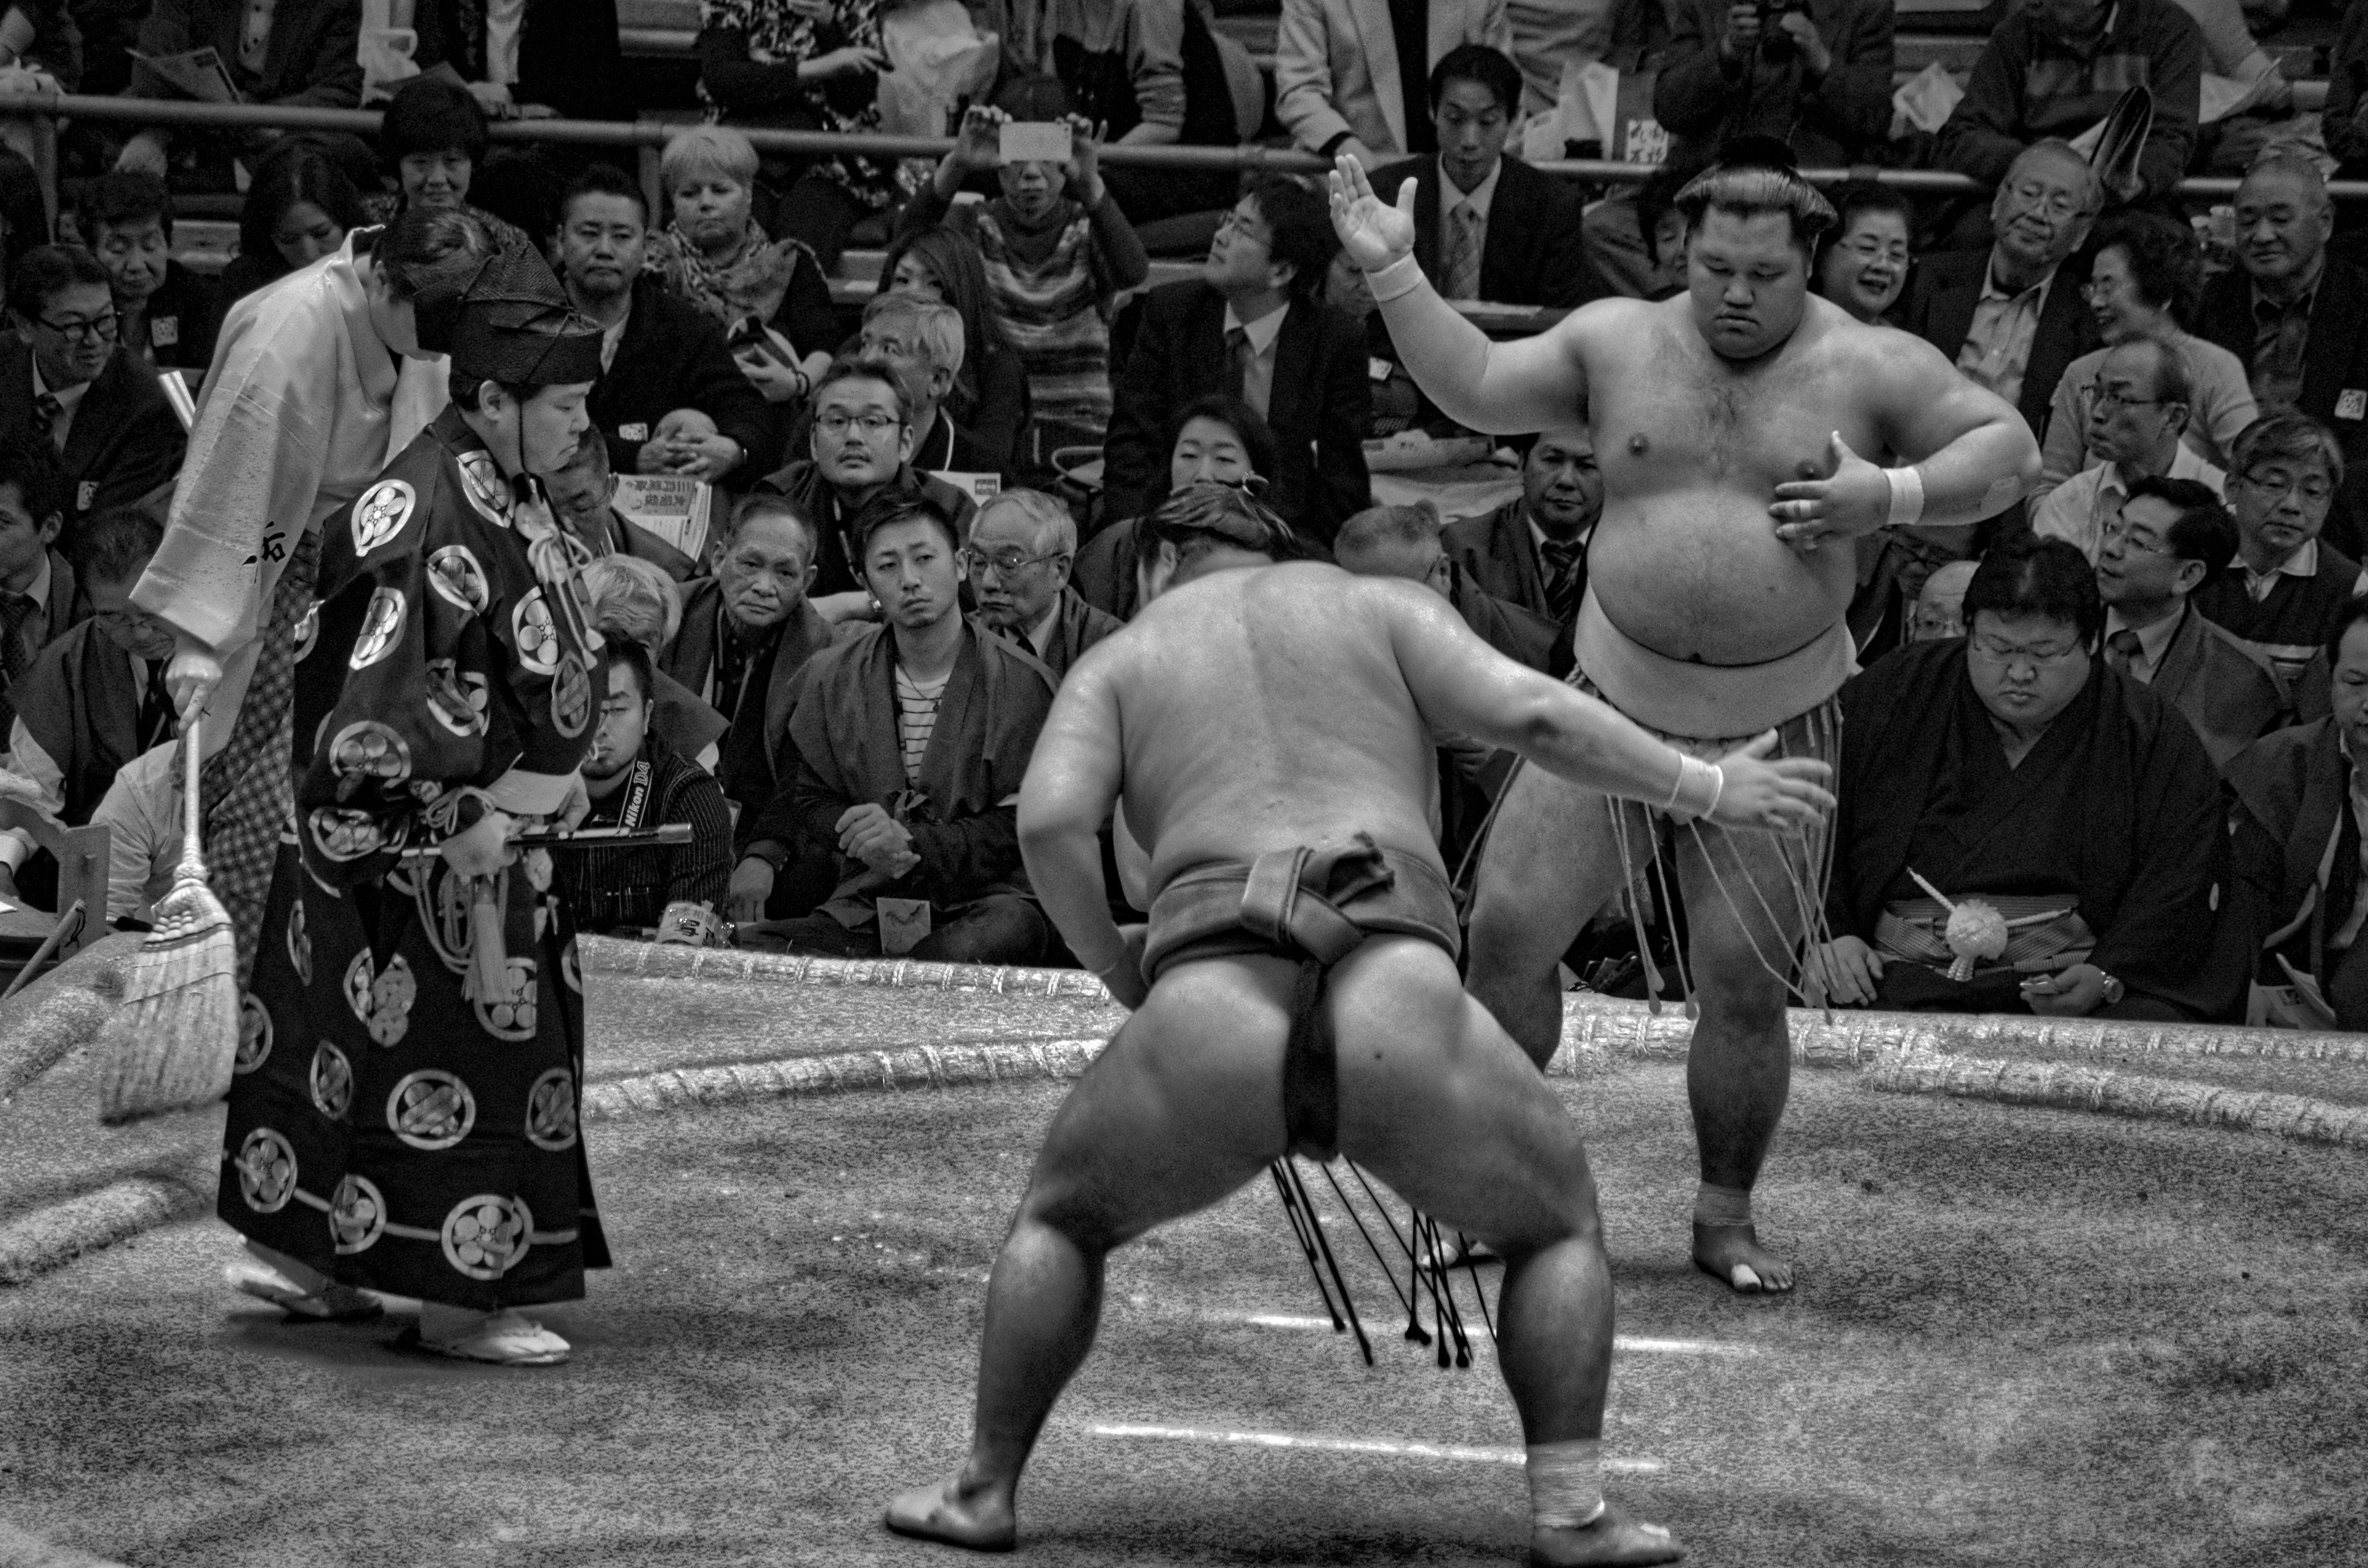 Grayscale photo of sumo wrestling surrounded with people